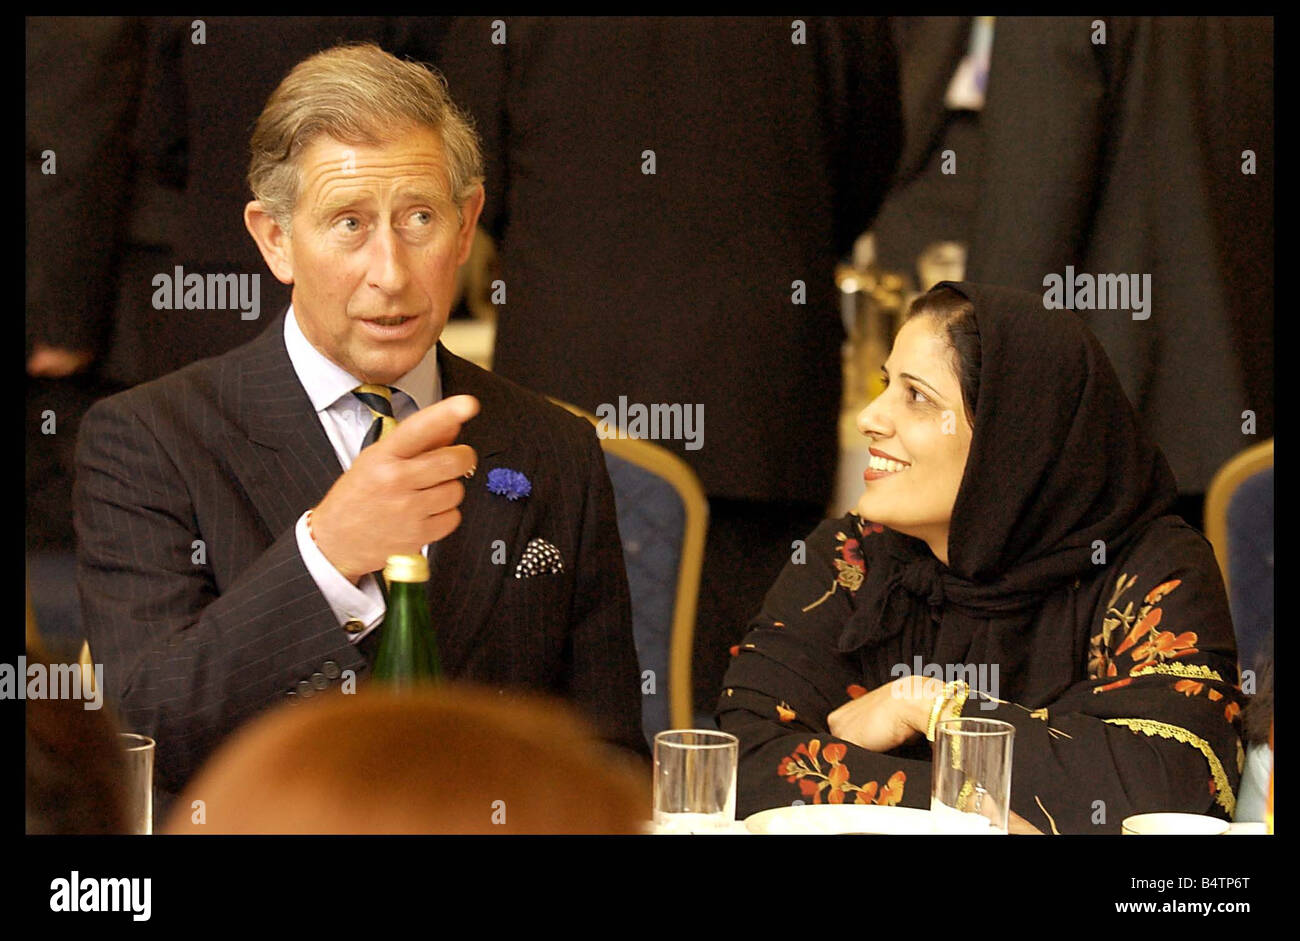 Prince Charles June 2003 visits the Central Mosque in Glasgow today as part of his visit to Scotland - Stock Image